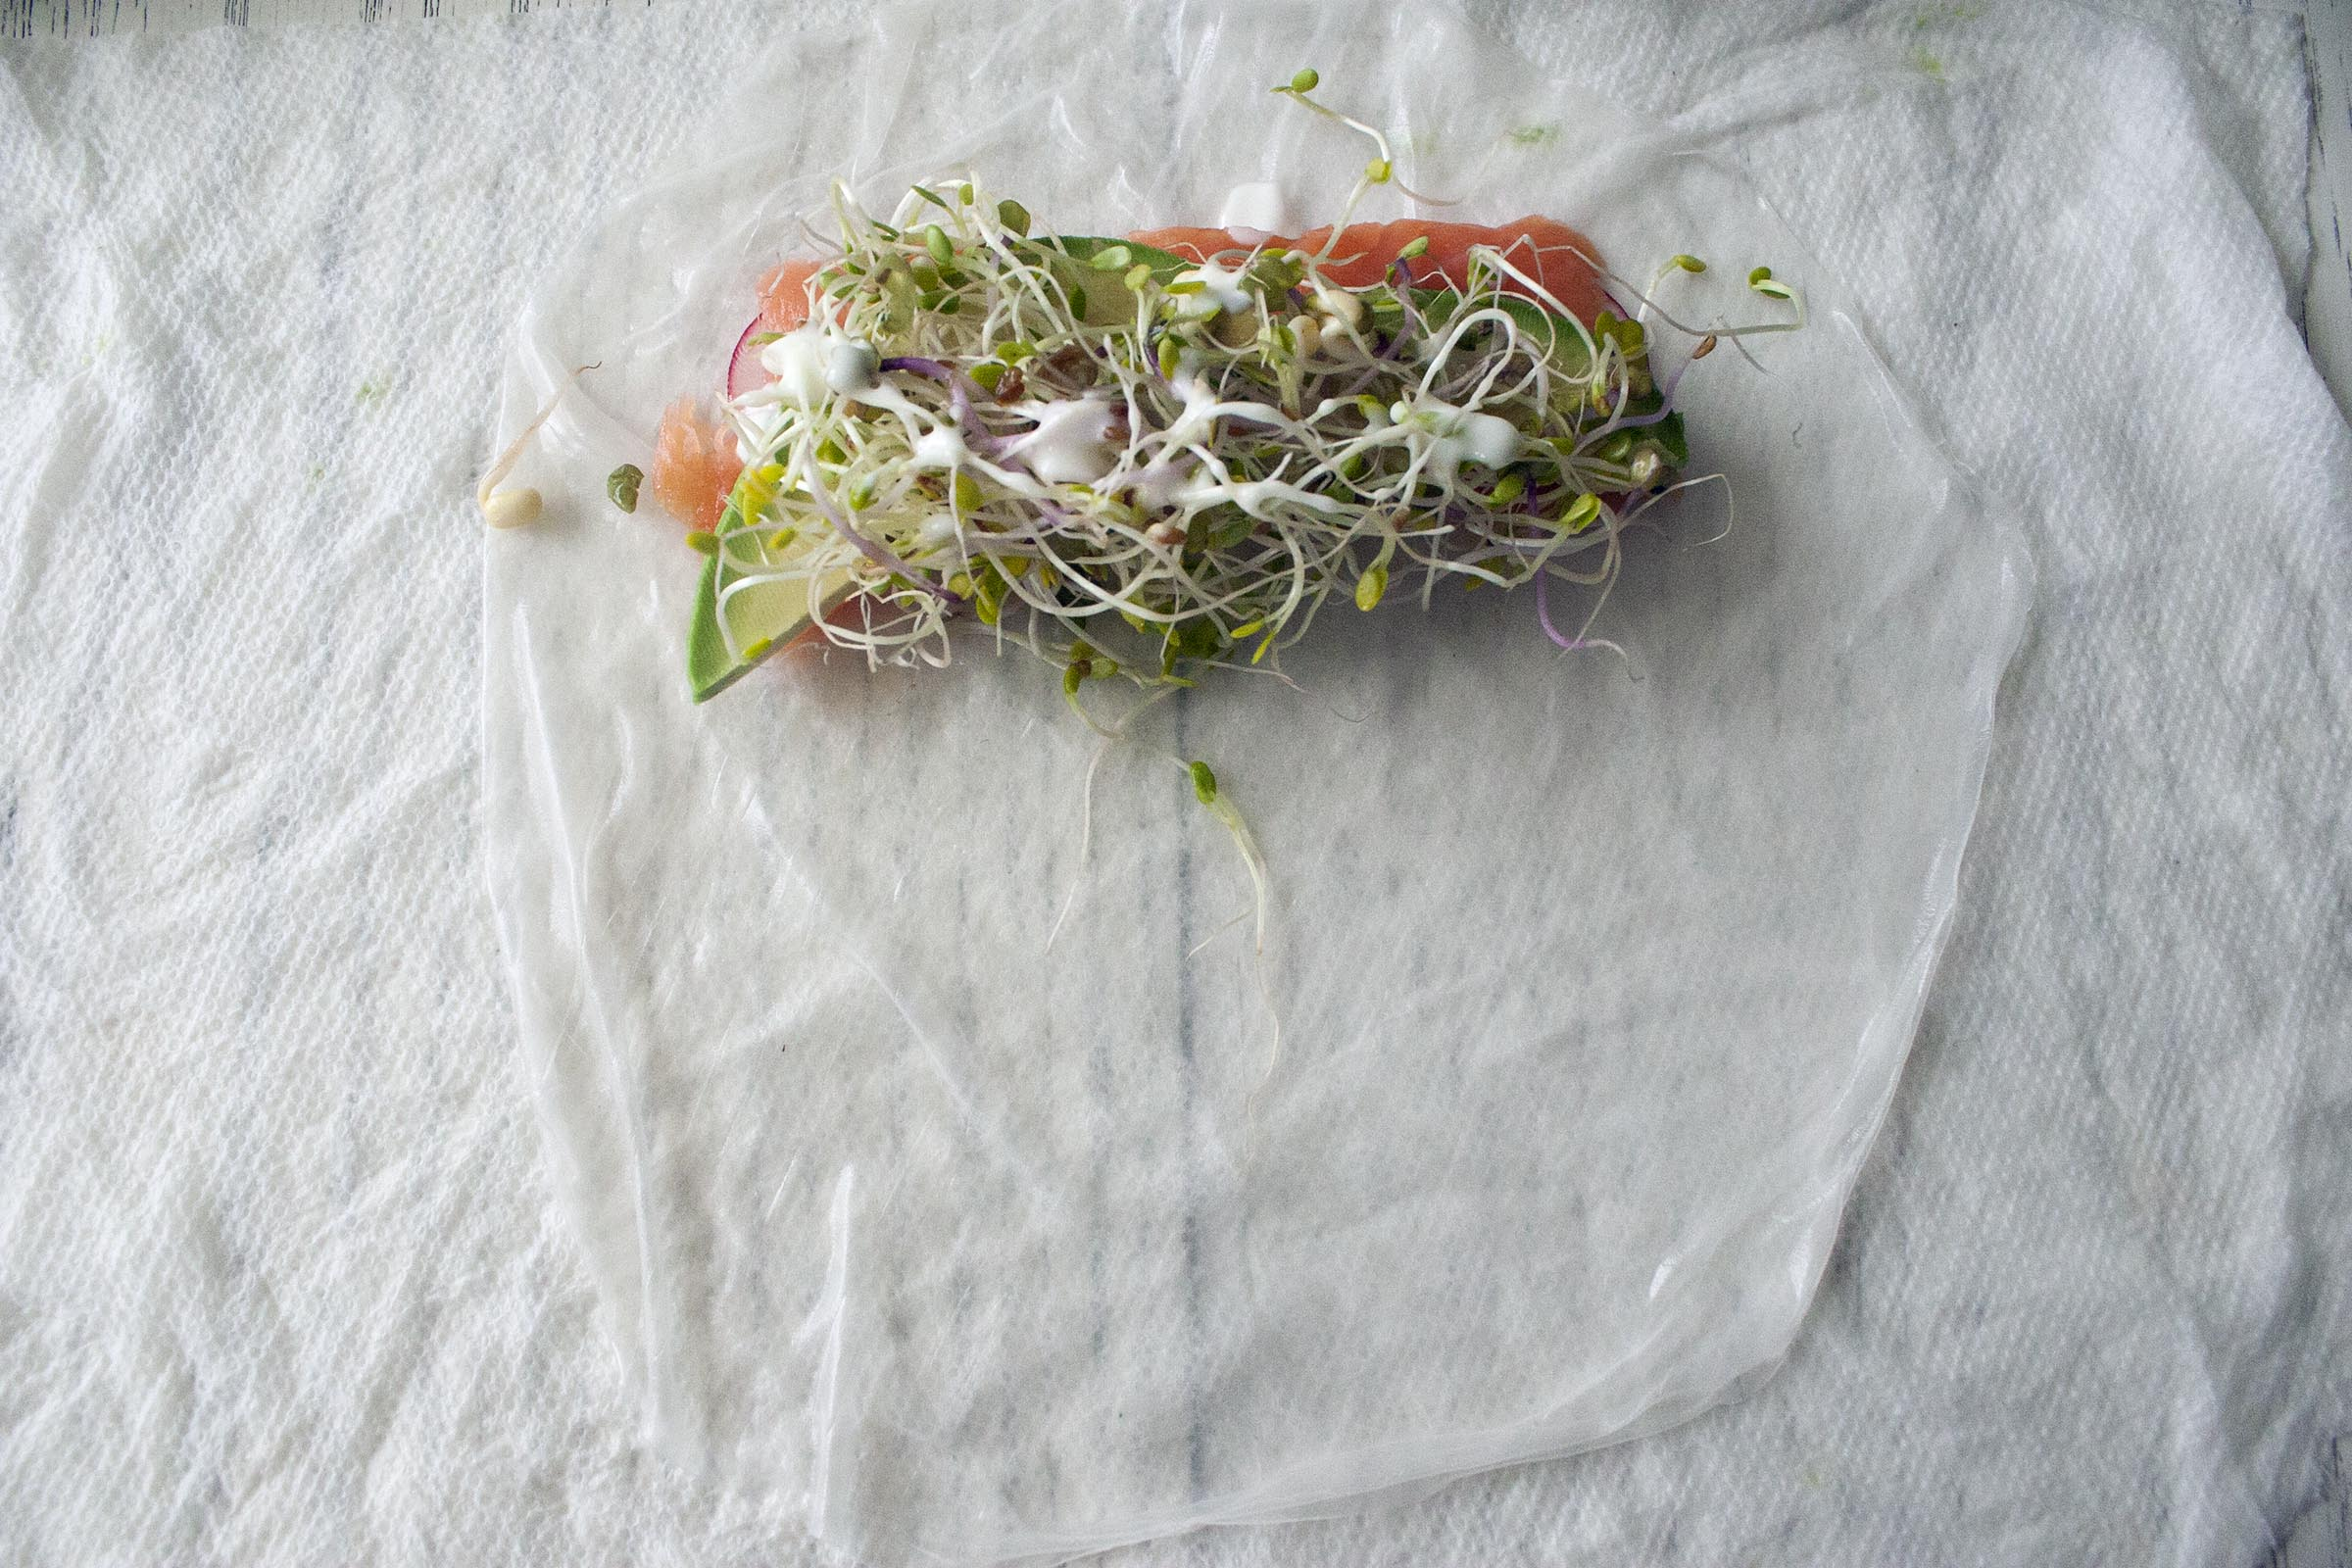 Assembling the Avocado and Smoked Salmon Summer Roll